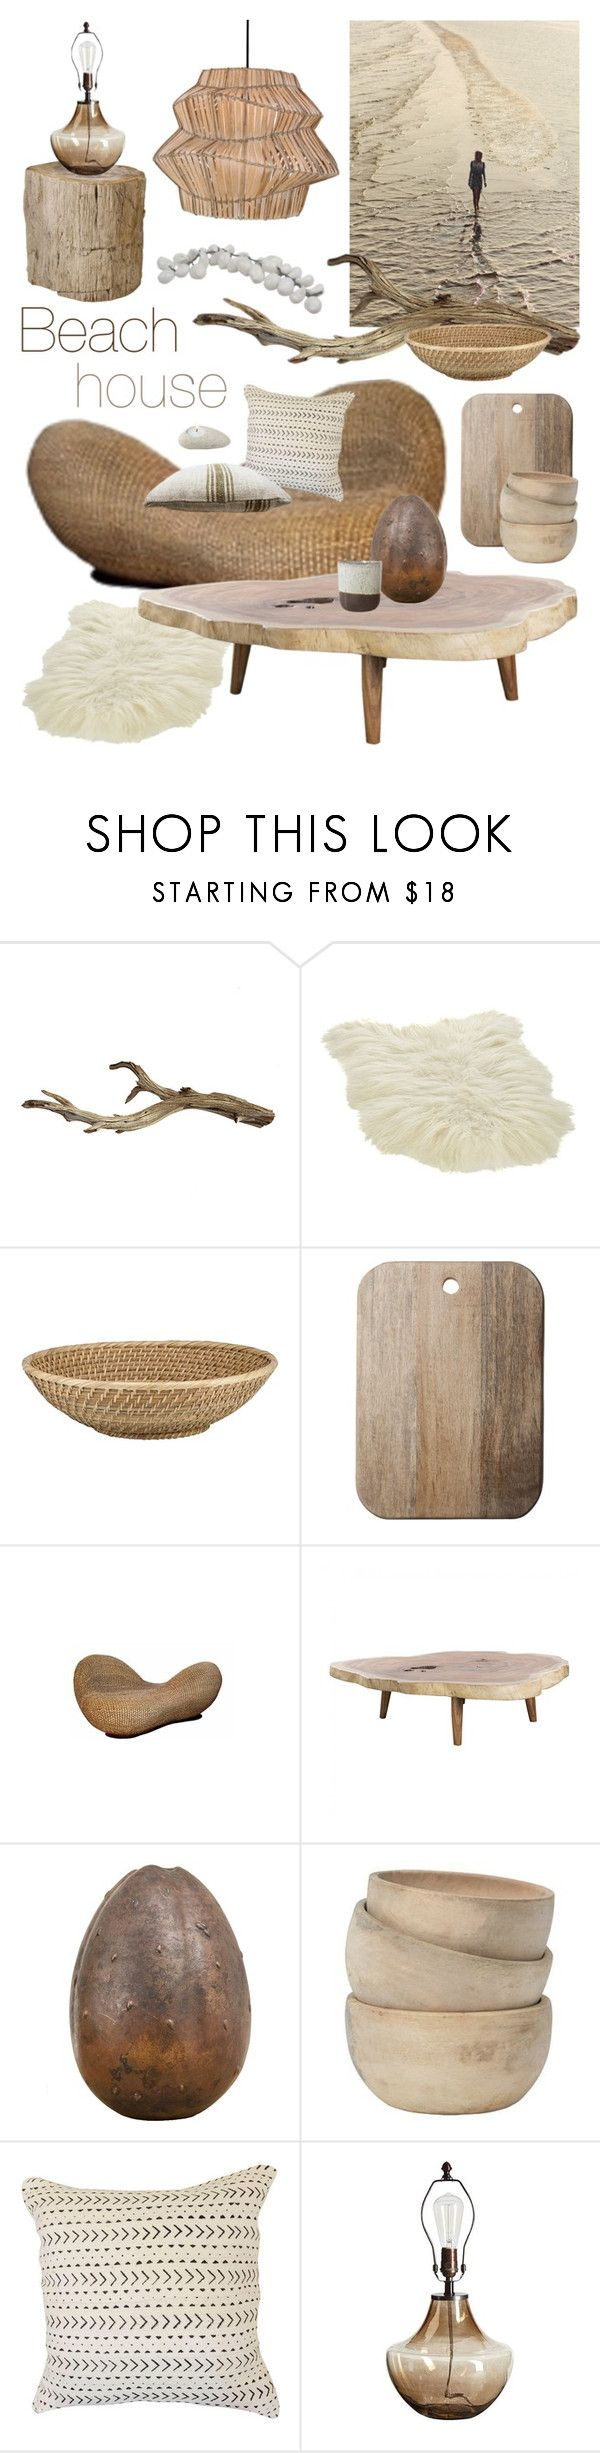 """Beach House"" by ladomna ❤ liked on Polyvore featuring interior, interiors, interior design, home, home decor, interior decorating, CB2, Lenox, Toast and McGuire"